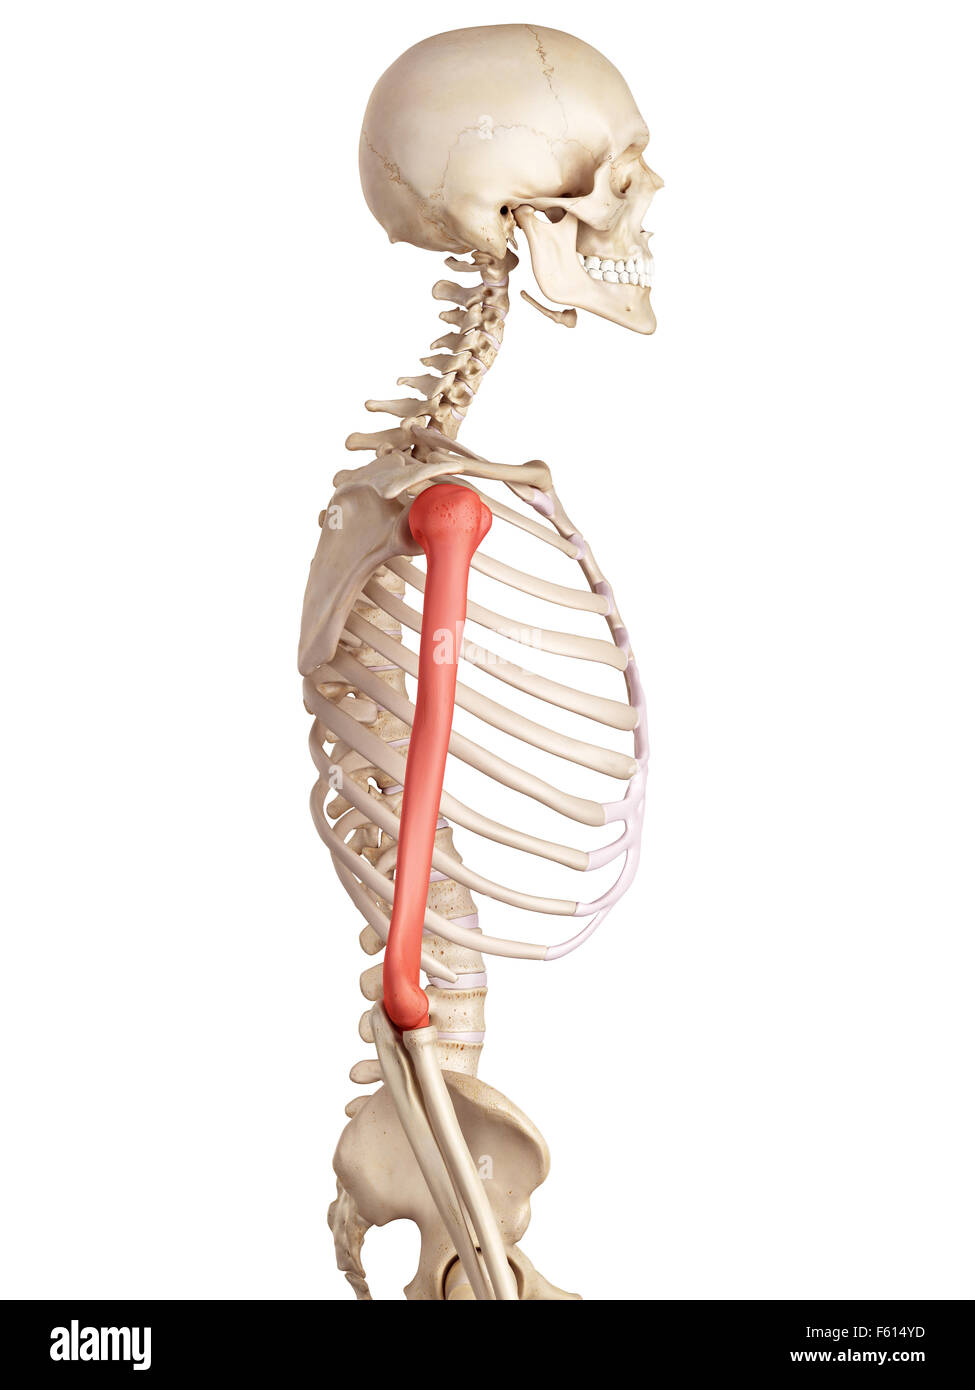 medical accurate illustration of the humerus bone - Stock Image